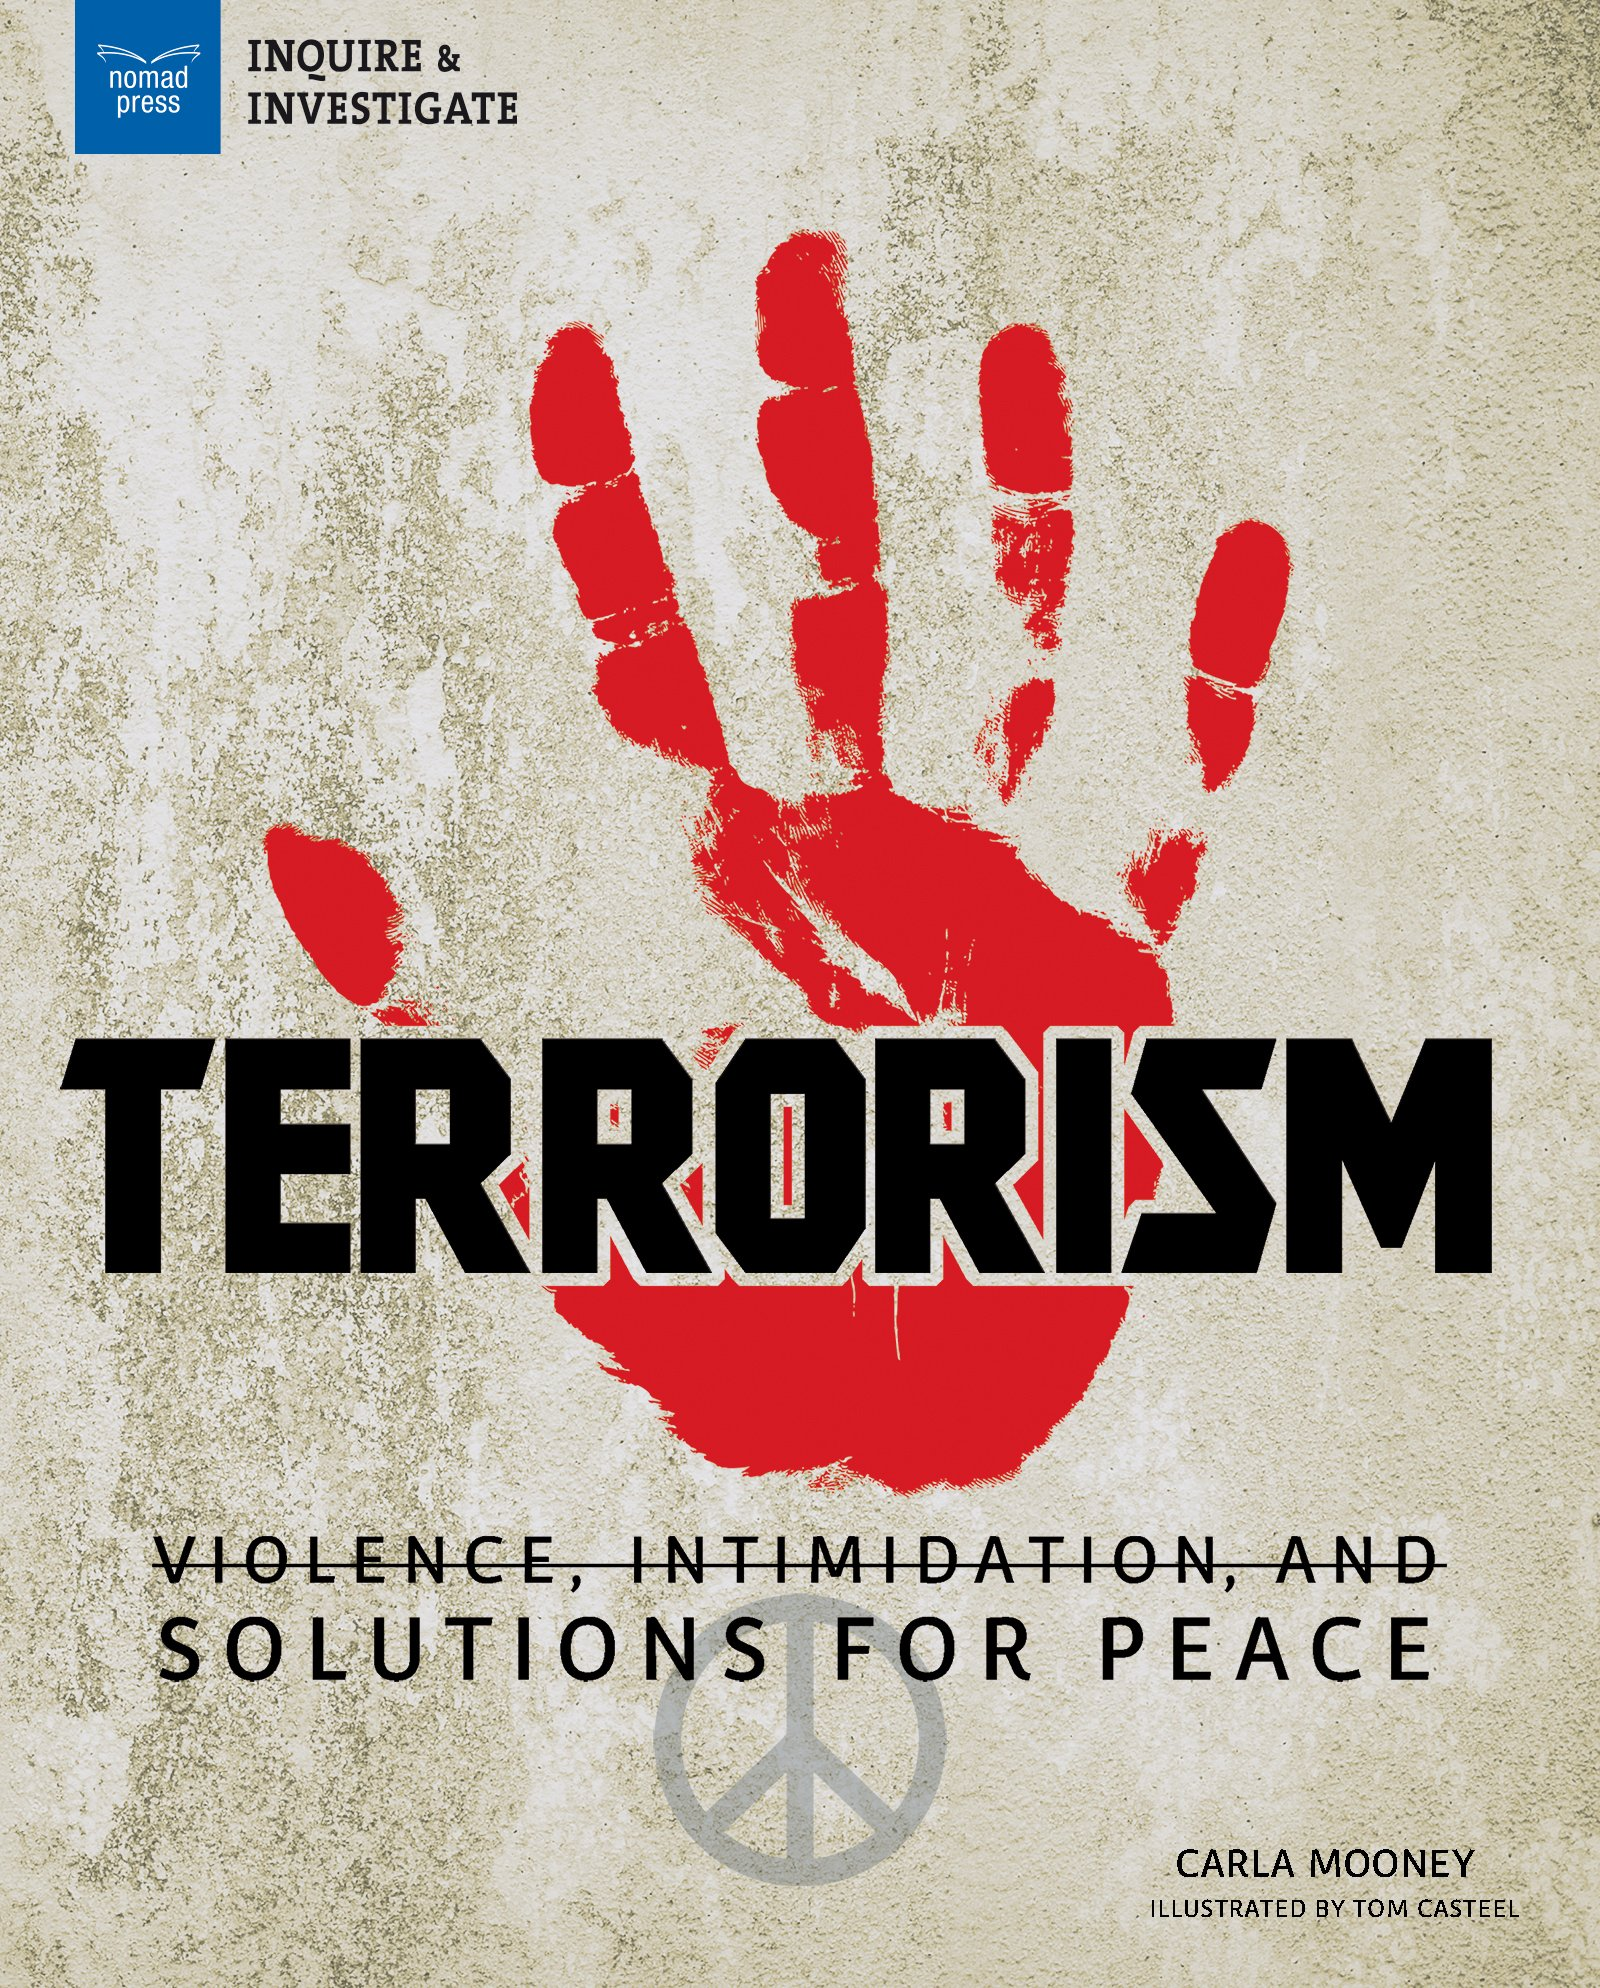 Terrorism: Violence, Intimidation, and Solutions for Peace (Inquire & Investigate) PDF